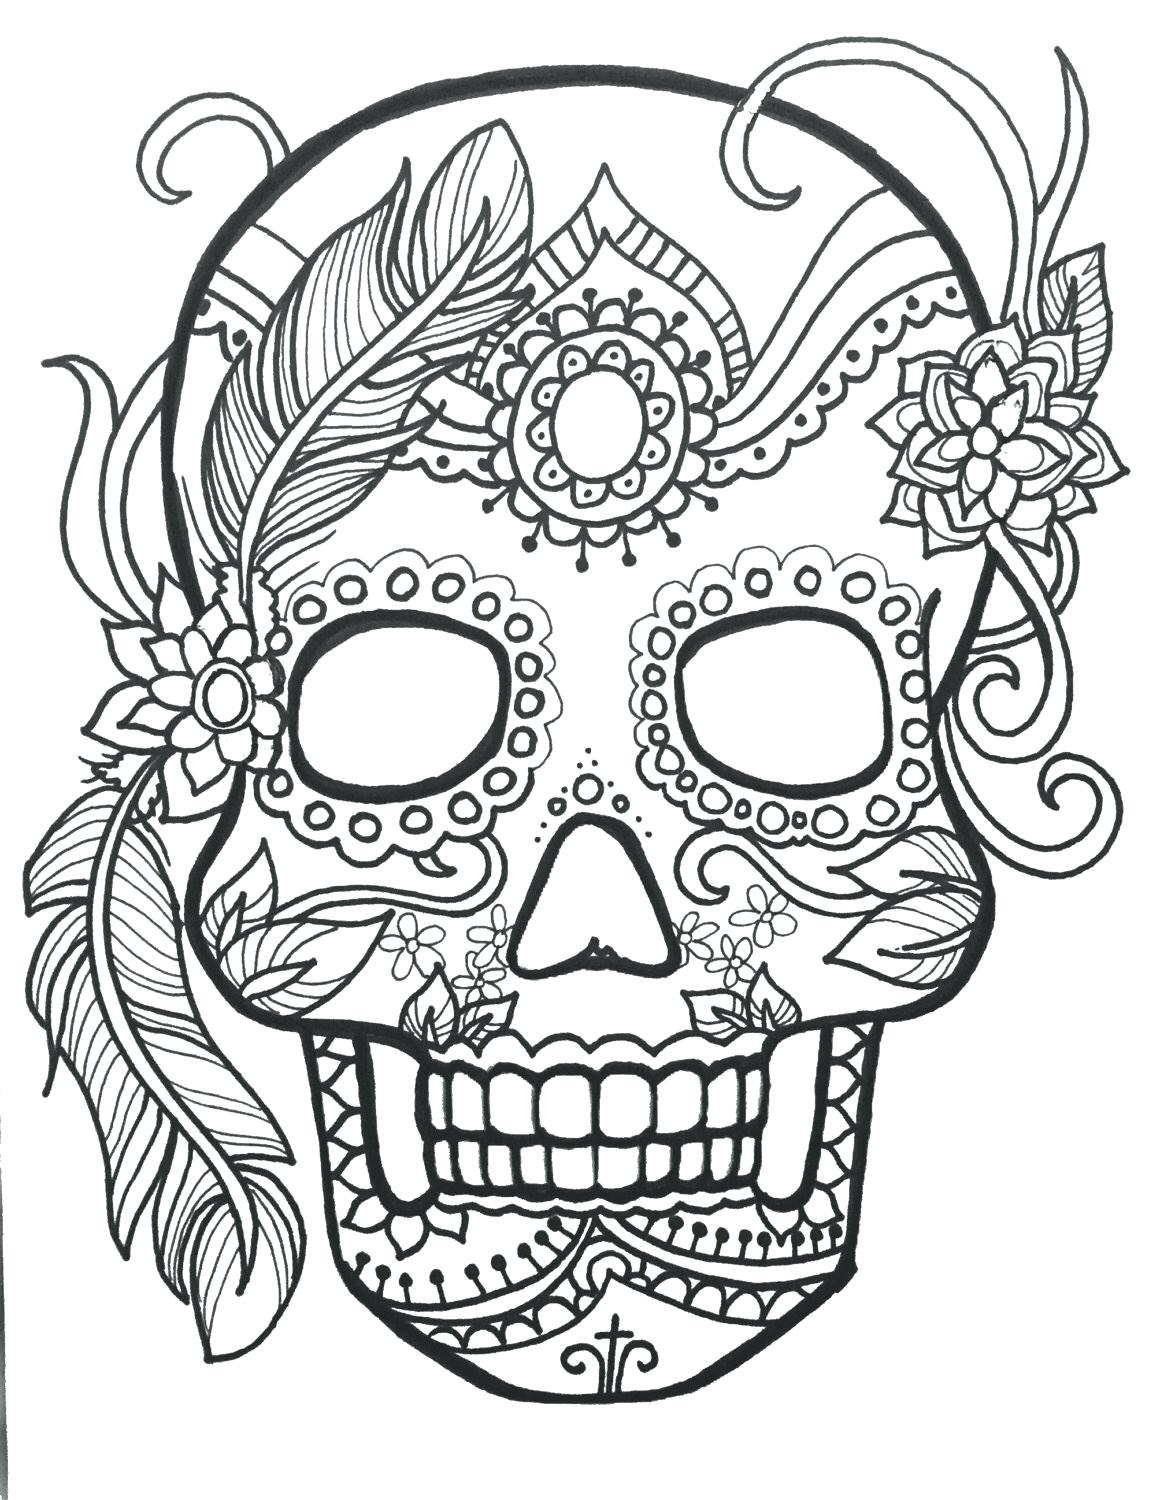 Skull Color Pages Skull Coloring Pages For Adults Sunbeltsheetco